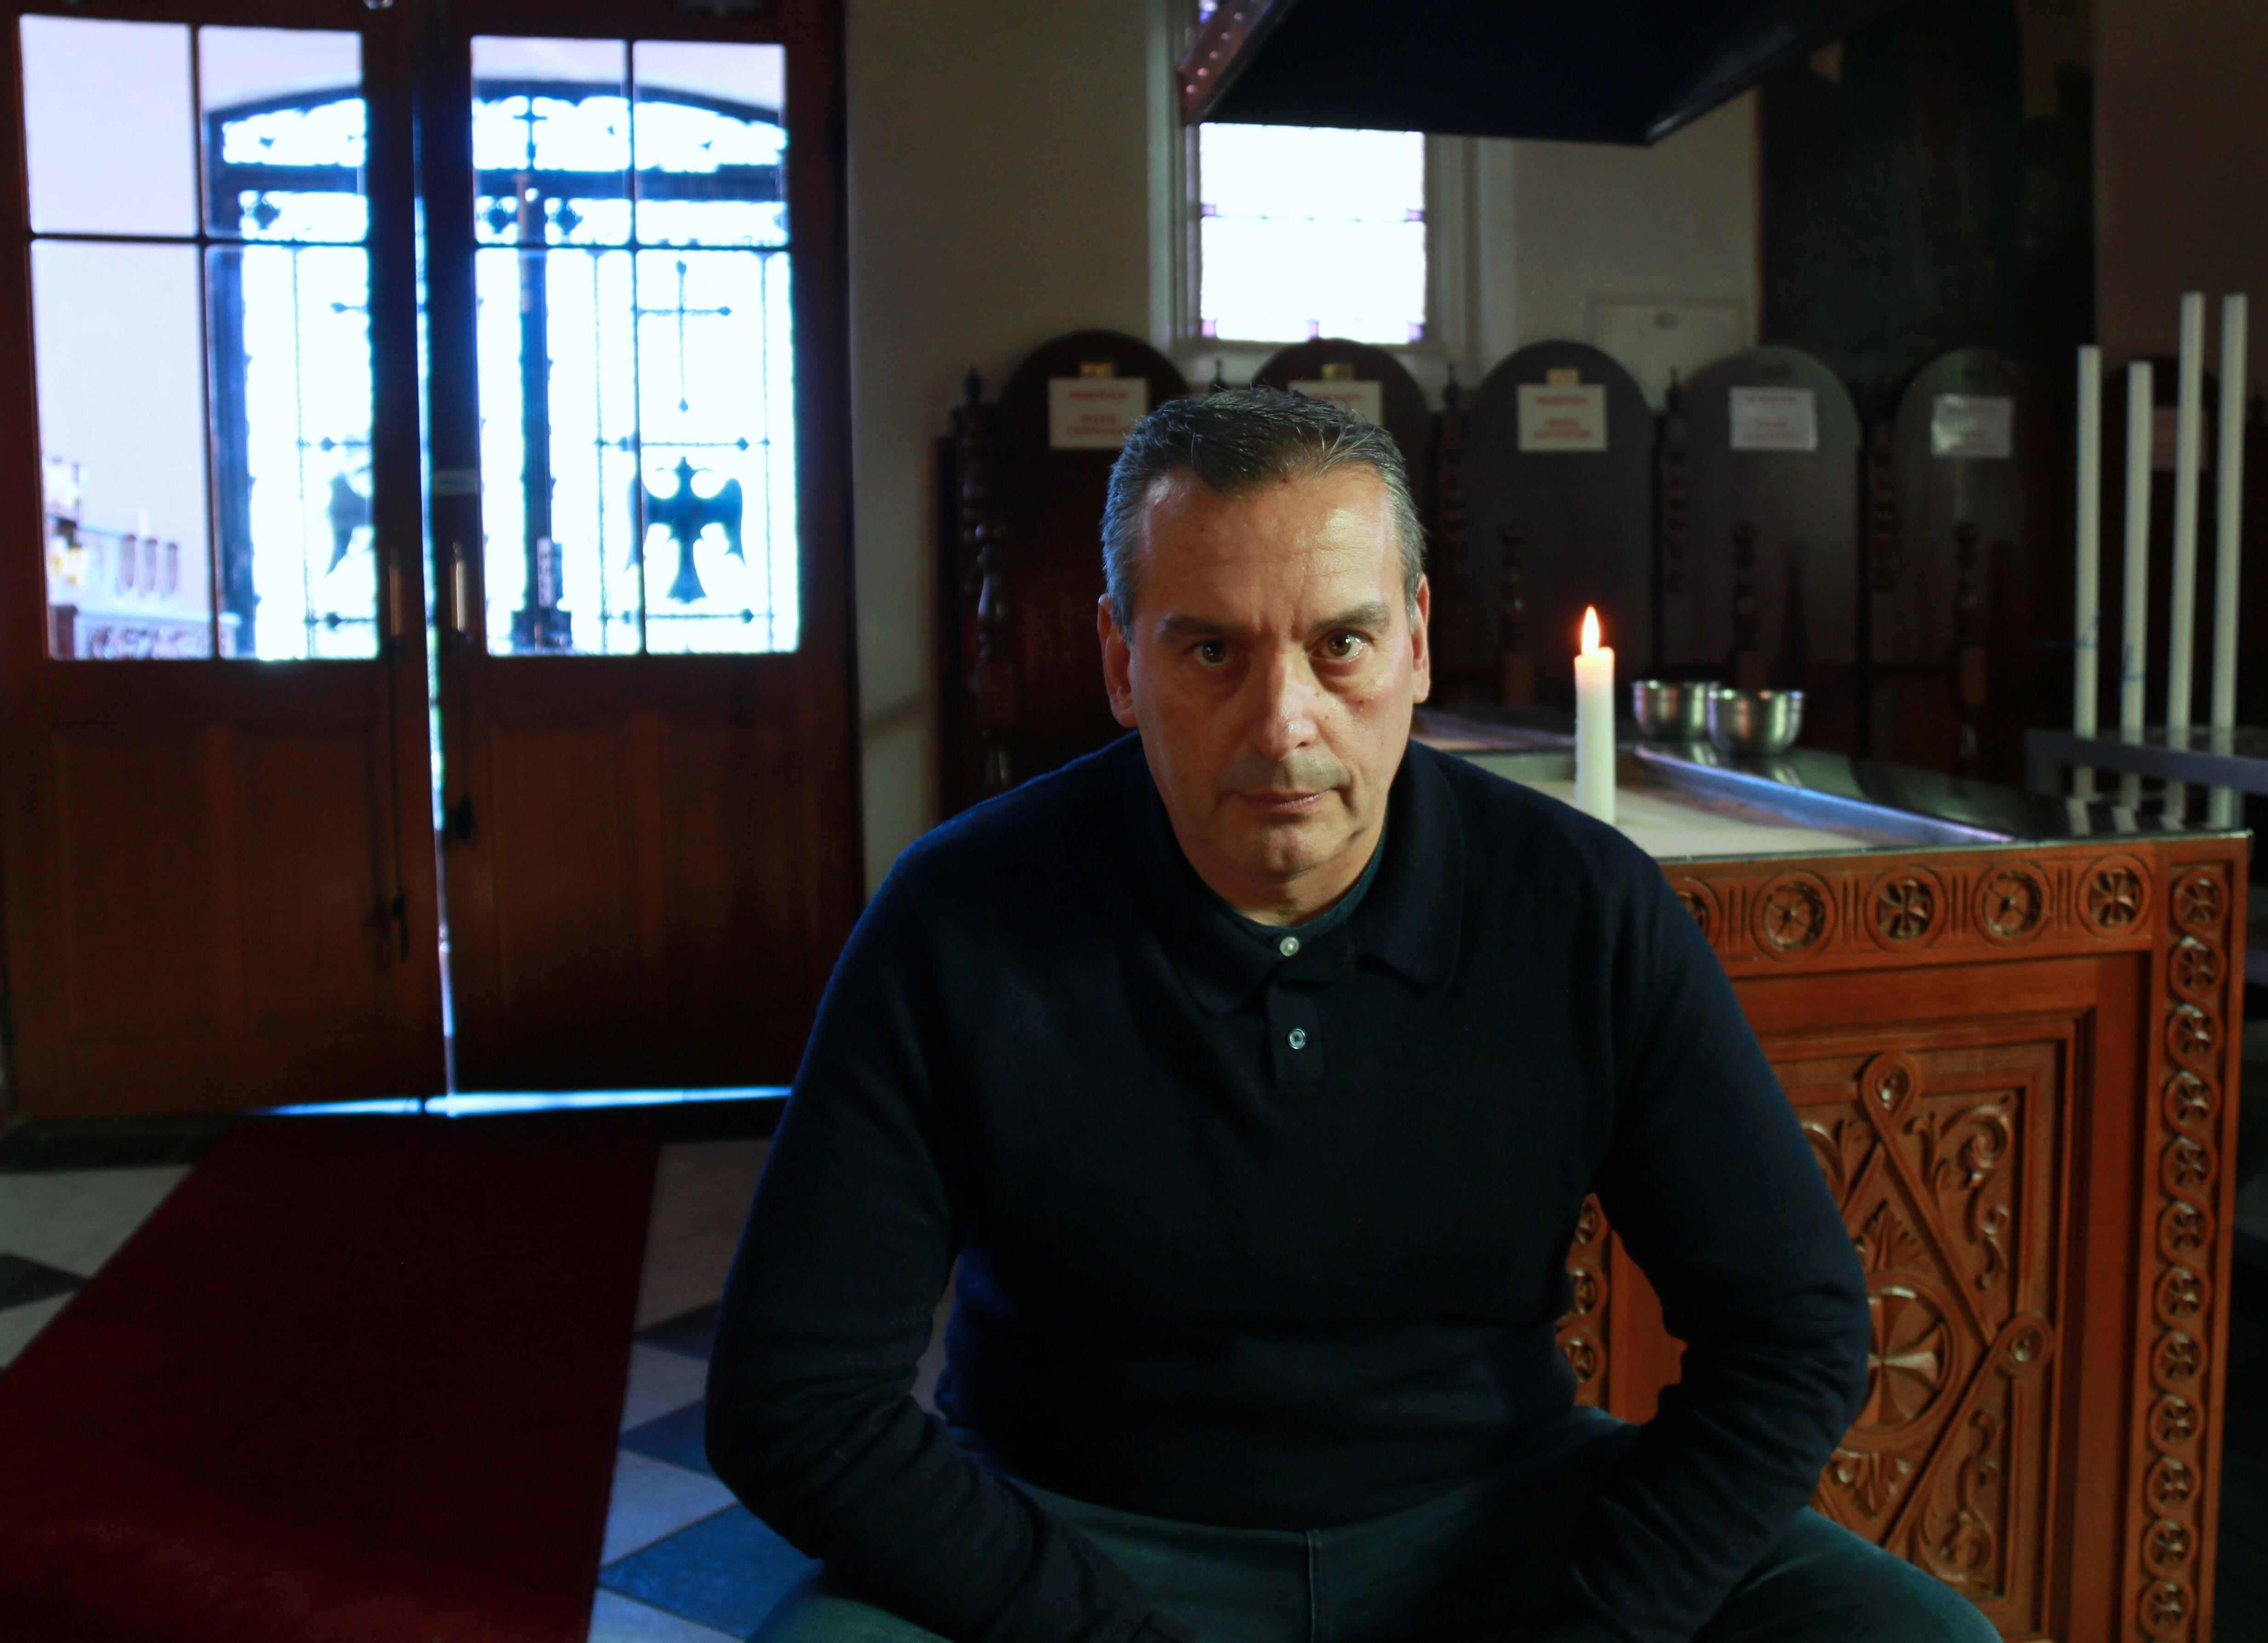 Shame, squalor and the birth of the Christian church: Christos Tsiolkas' wild ride to Damascus